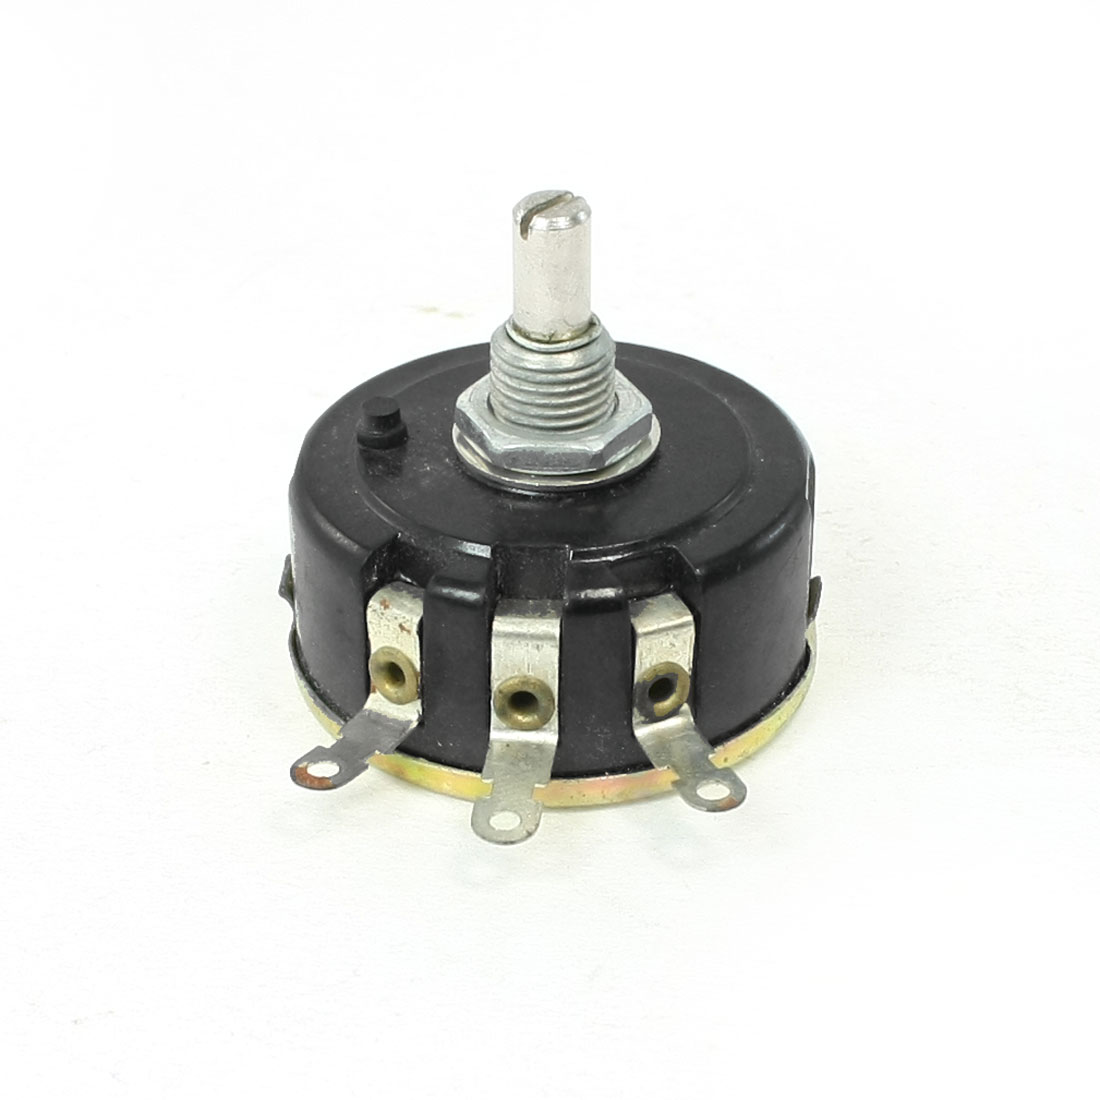 22K ohm Single Turn Carbon Composition Rotary Taper Potentiometer